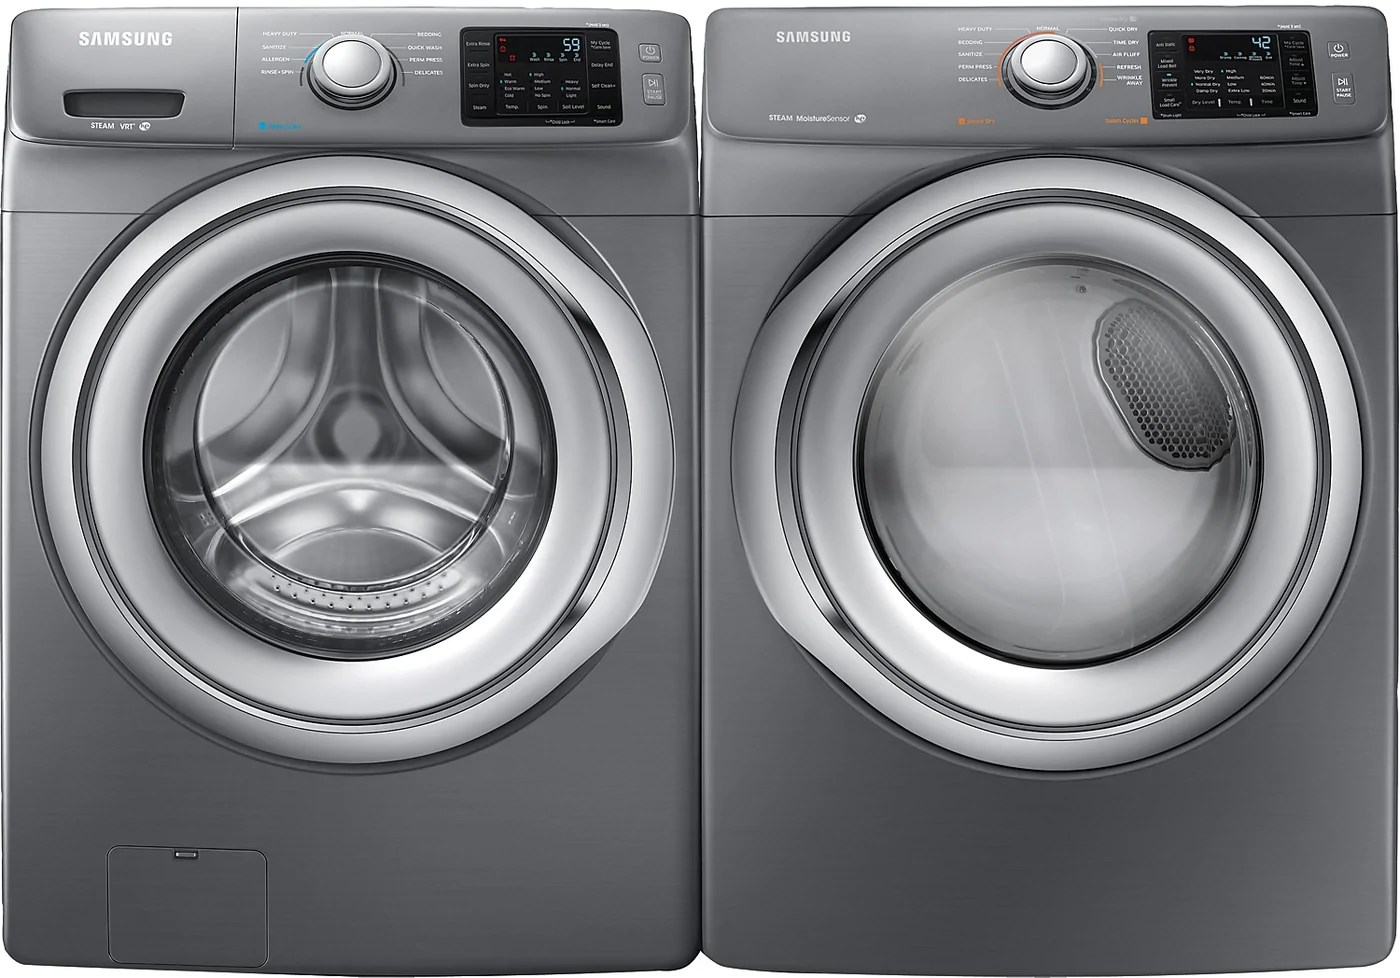 Samsung Front Load Washer Samsung 4 8 Cu Ft Front Load Washer And 7 5 Cu Ft Electric Dryer Platinum